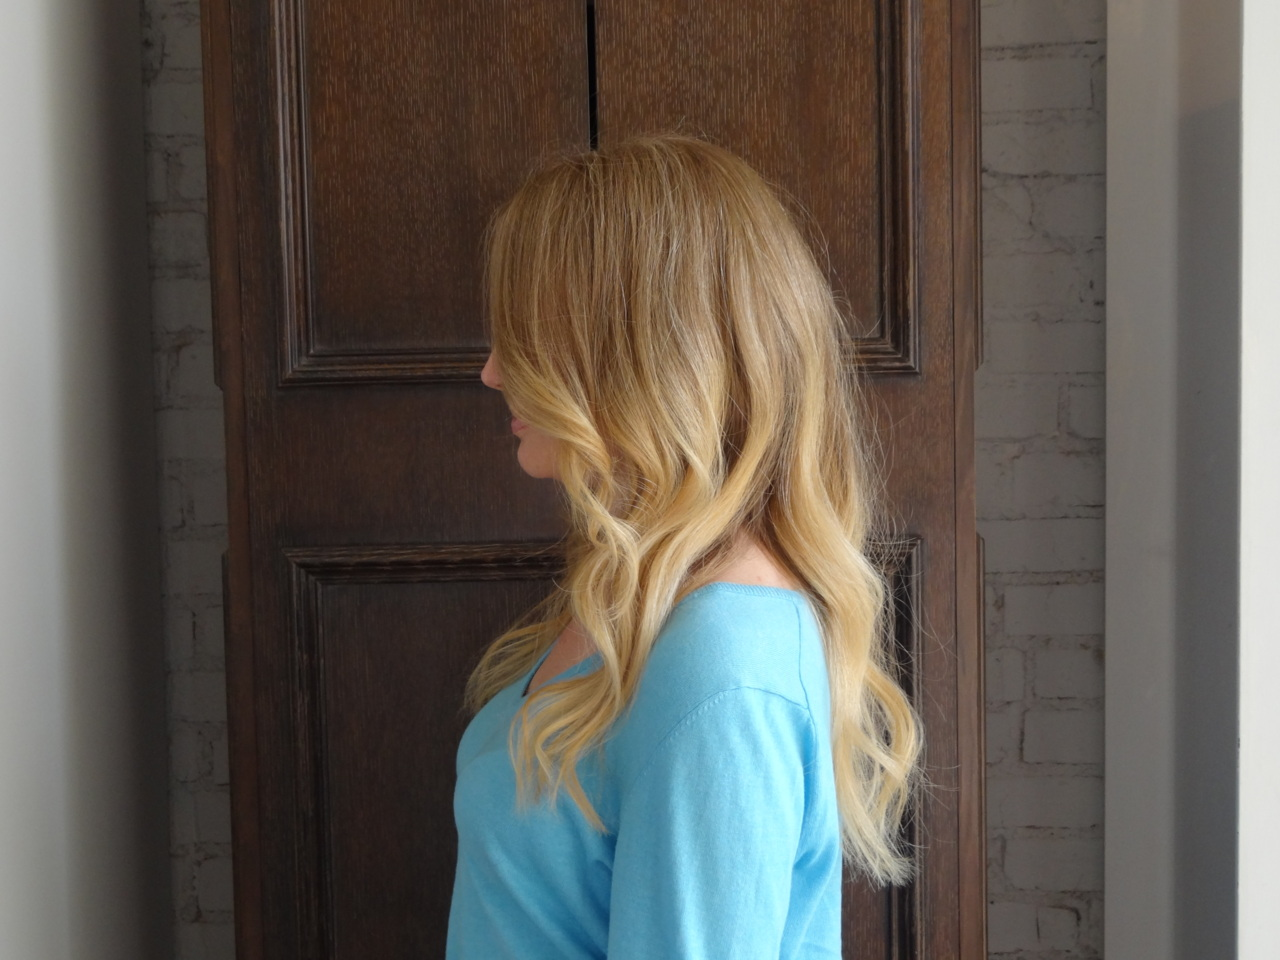 Blonde Ombre Hairstyles Colors: Blending Ombre Hair Color By Sarah Conner